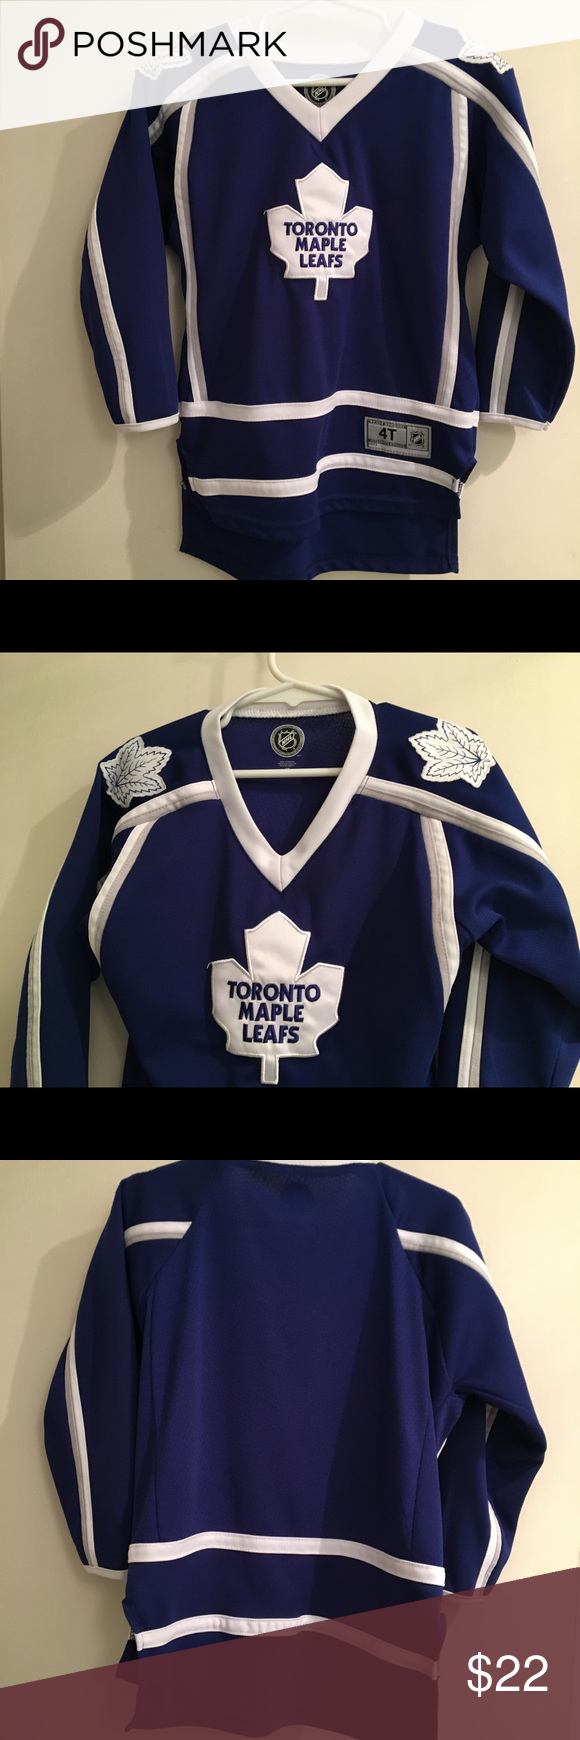 fa1c6d16b NHL Toronto Maple Leafs Jersey EUC Toronto Maple Leafs Jersey - 4T. Perfect  for your young fan, be they a boy or girl! Buy now and wear for the next  game!